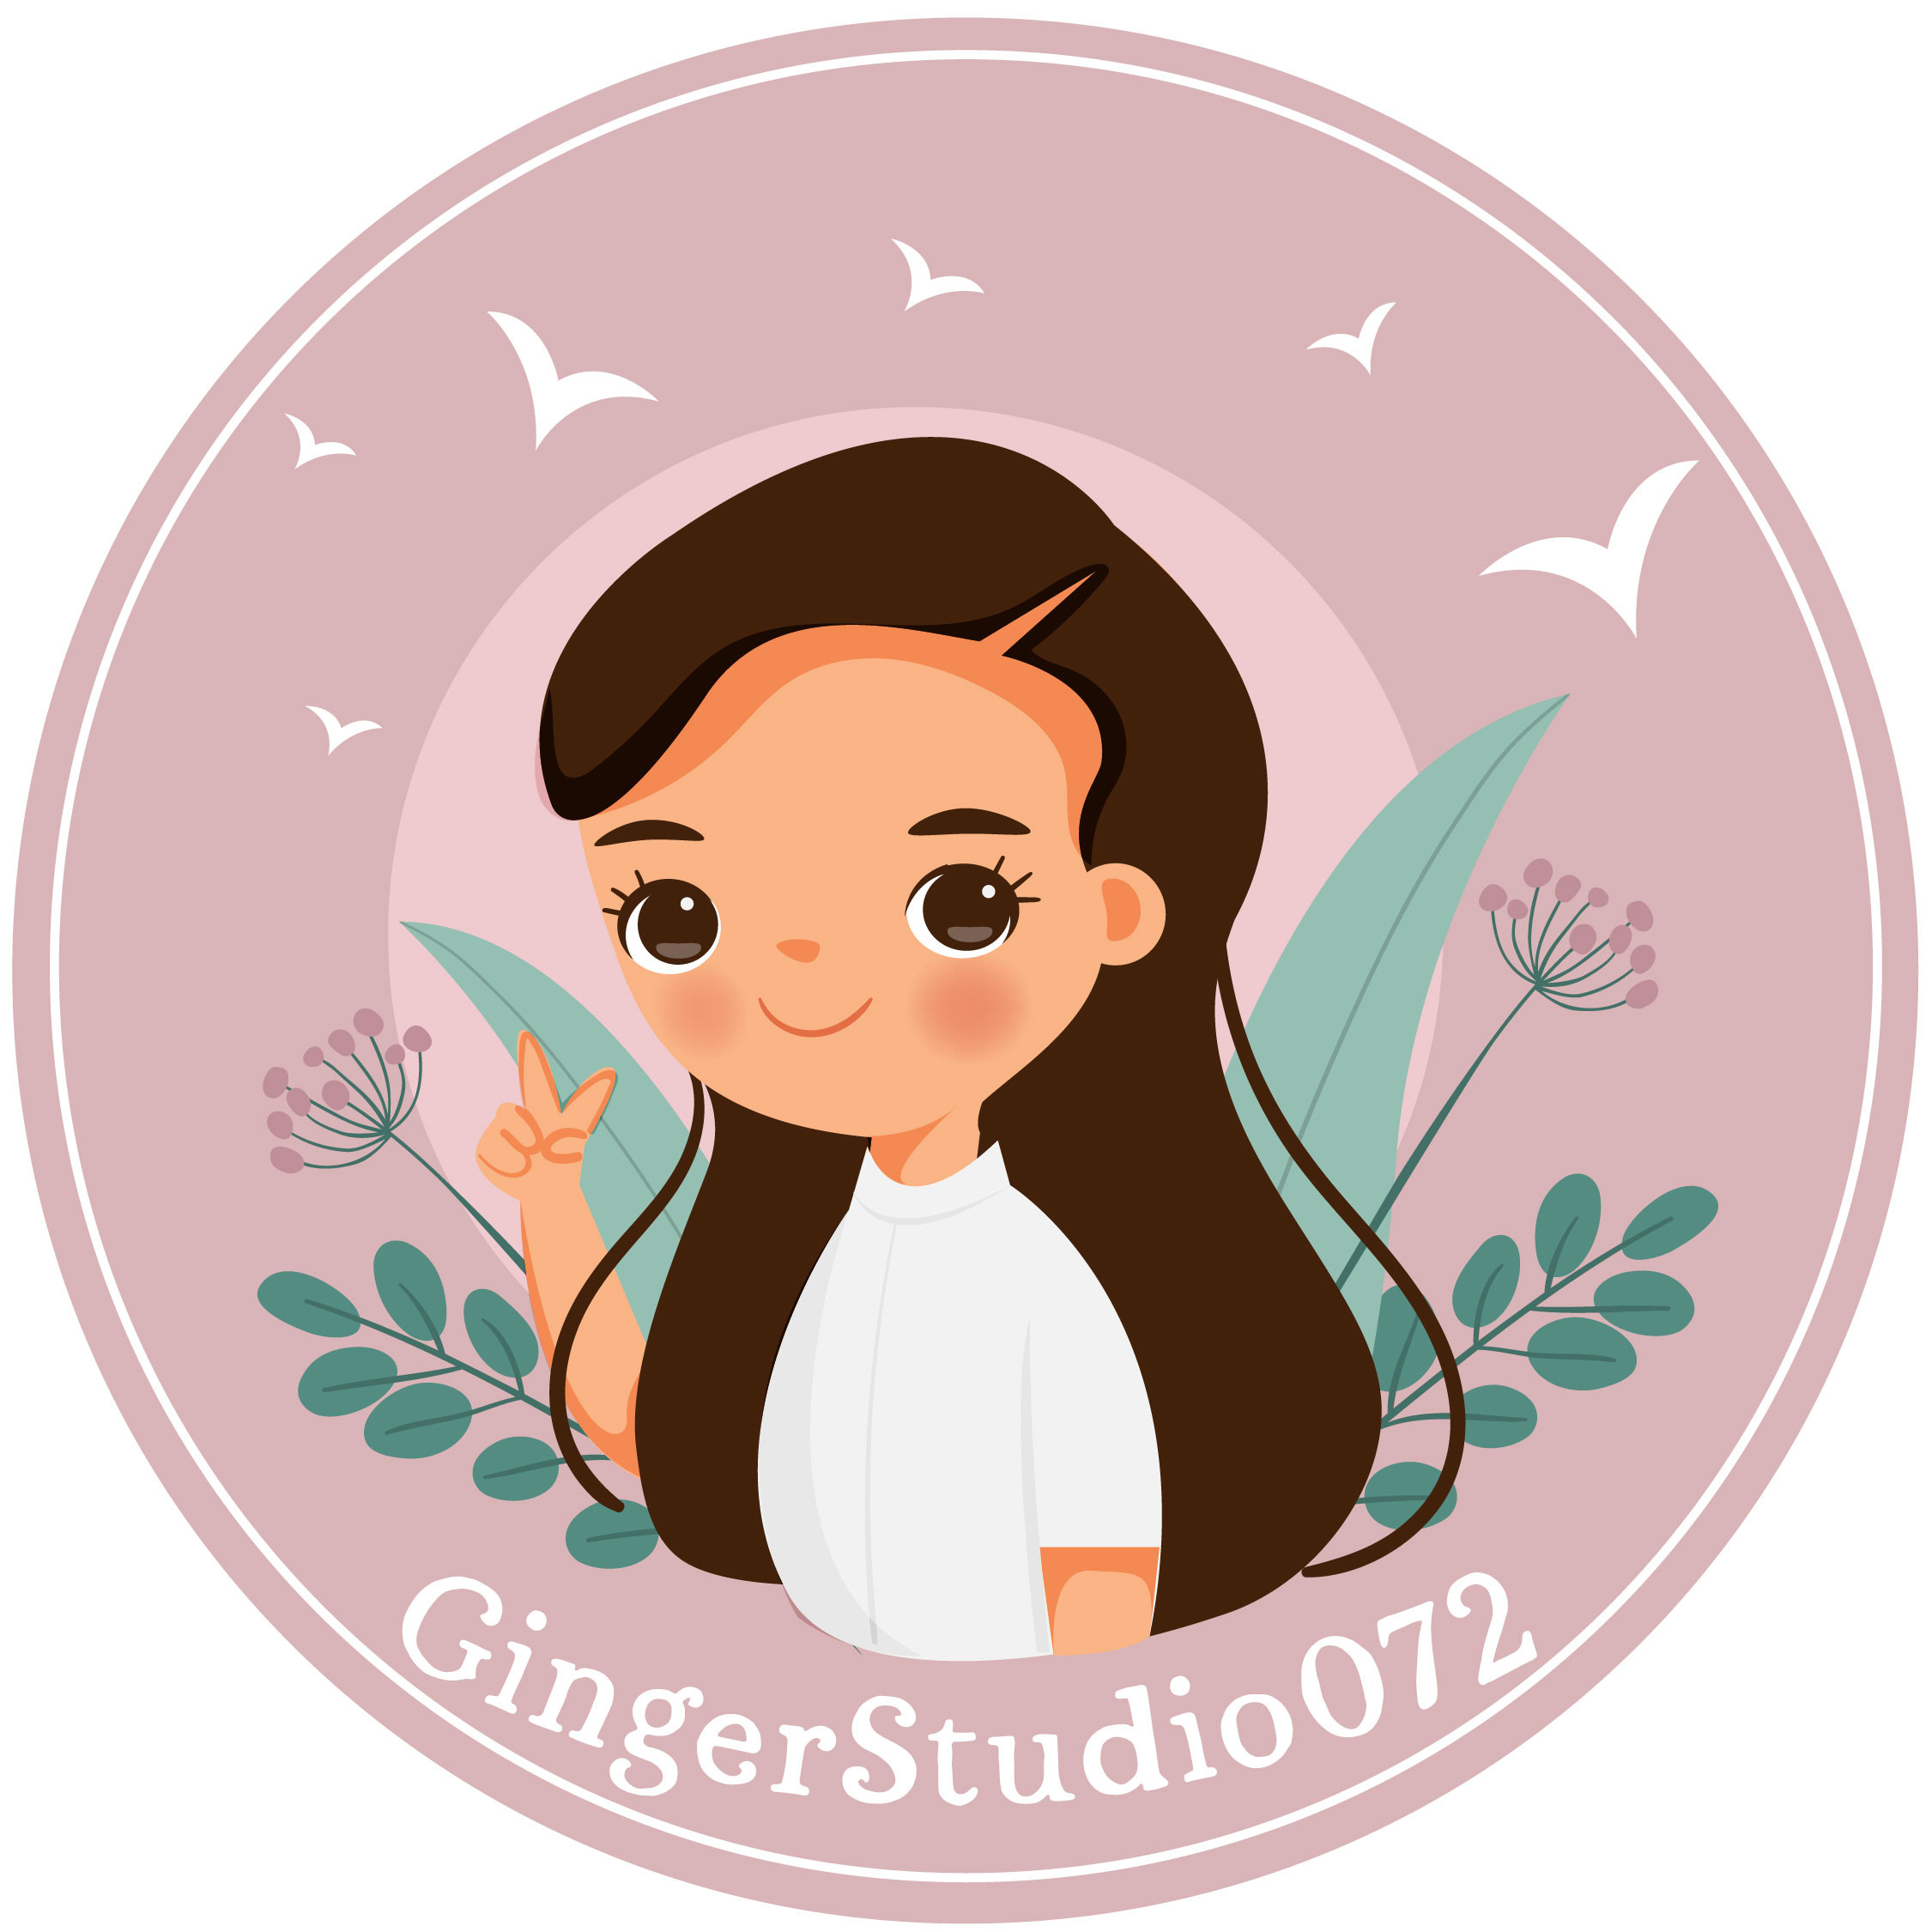 Gingerstudio072's profile picture